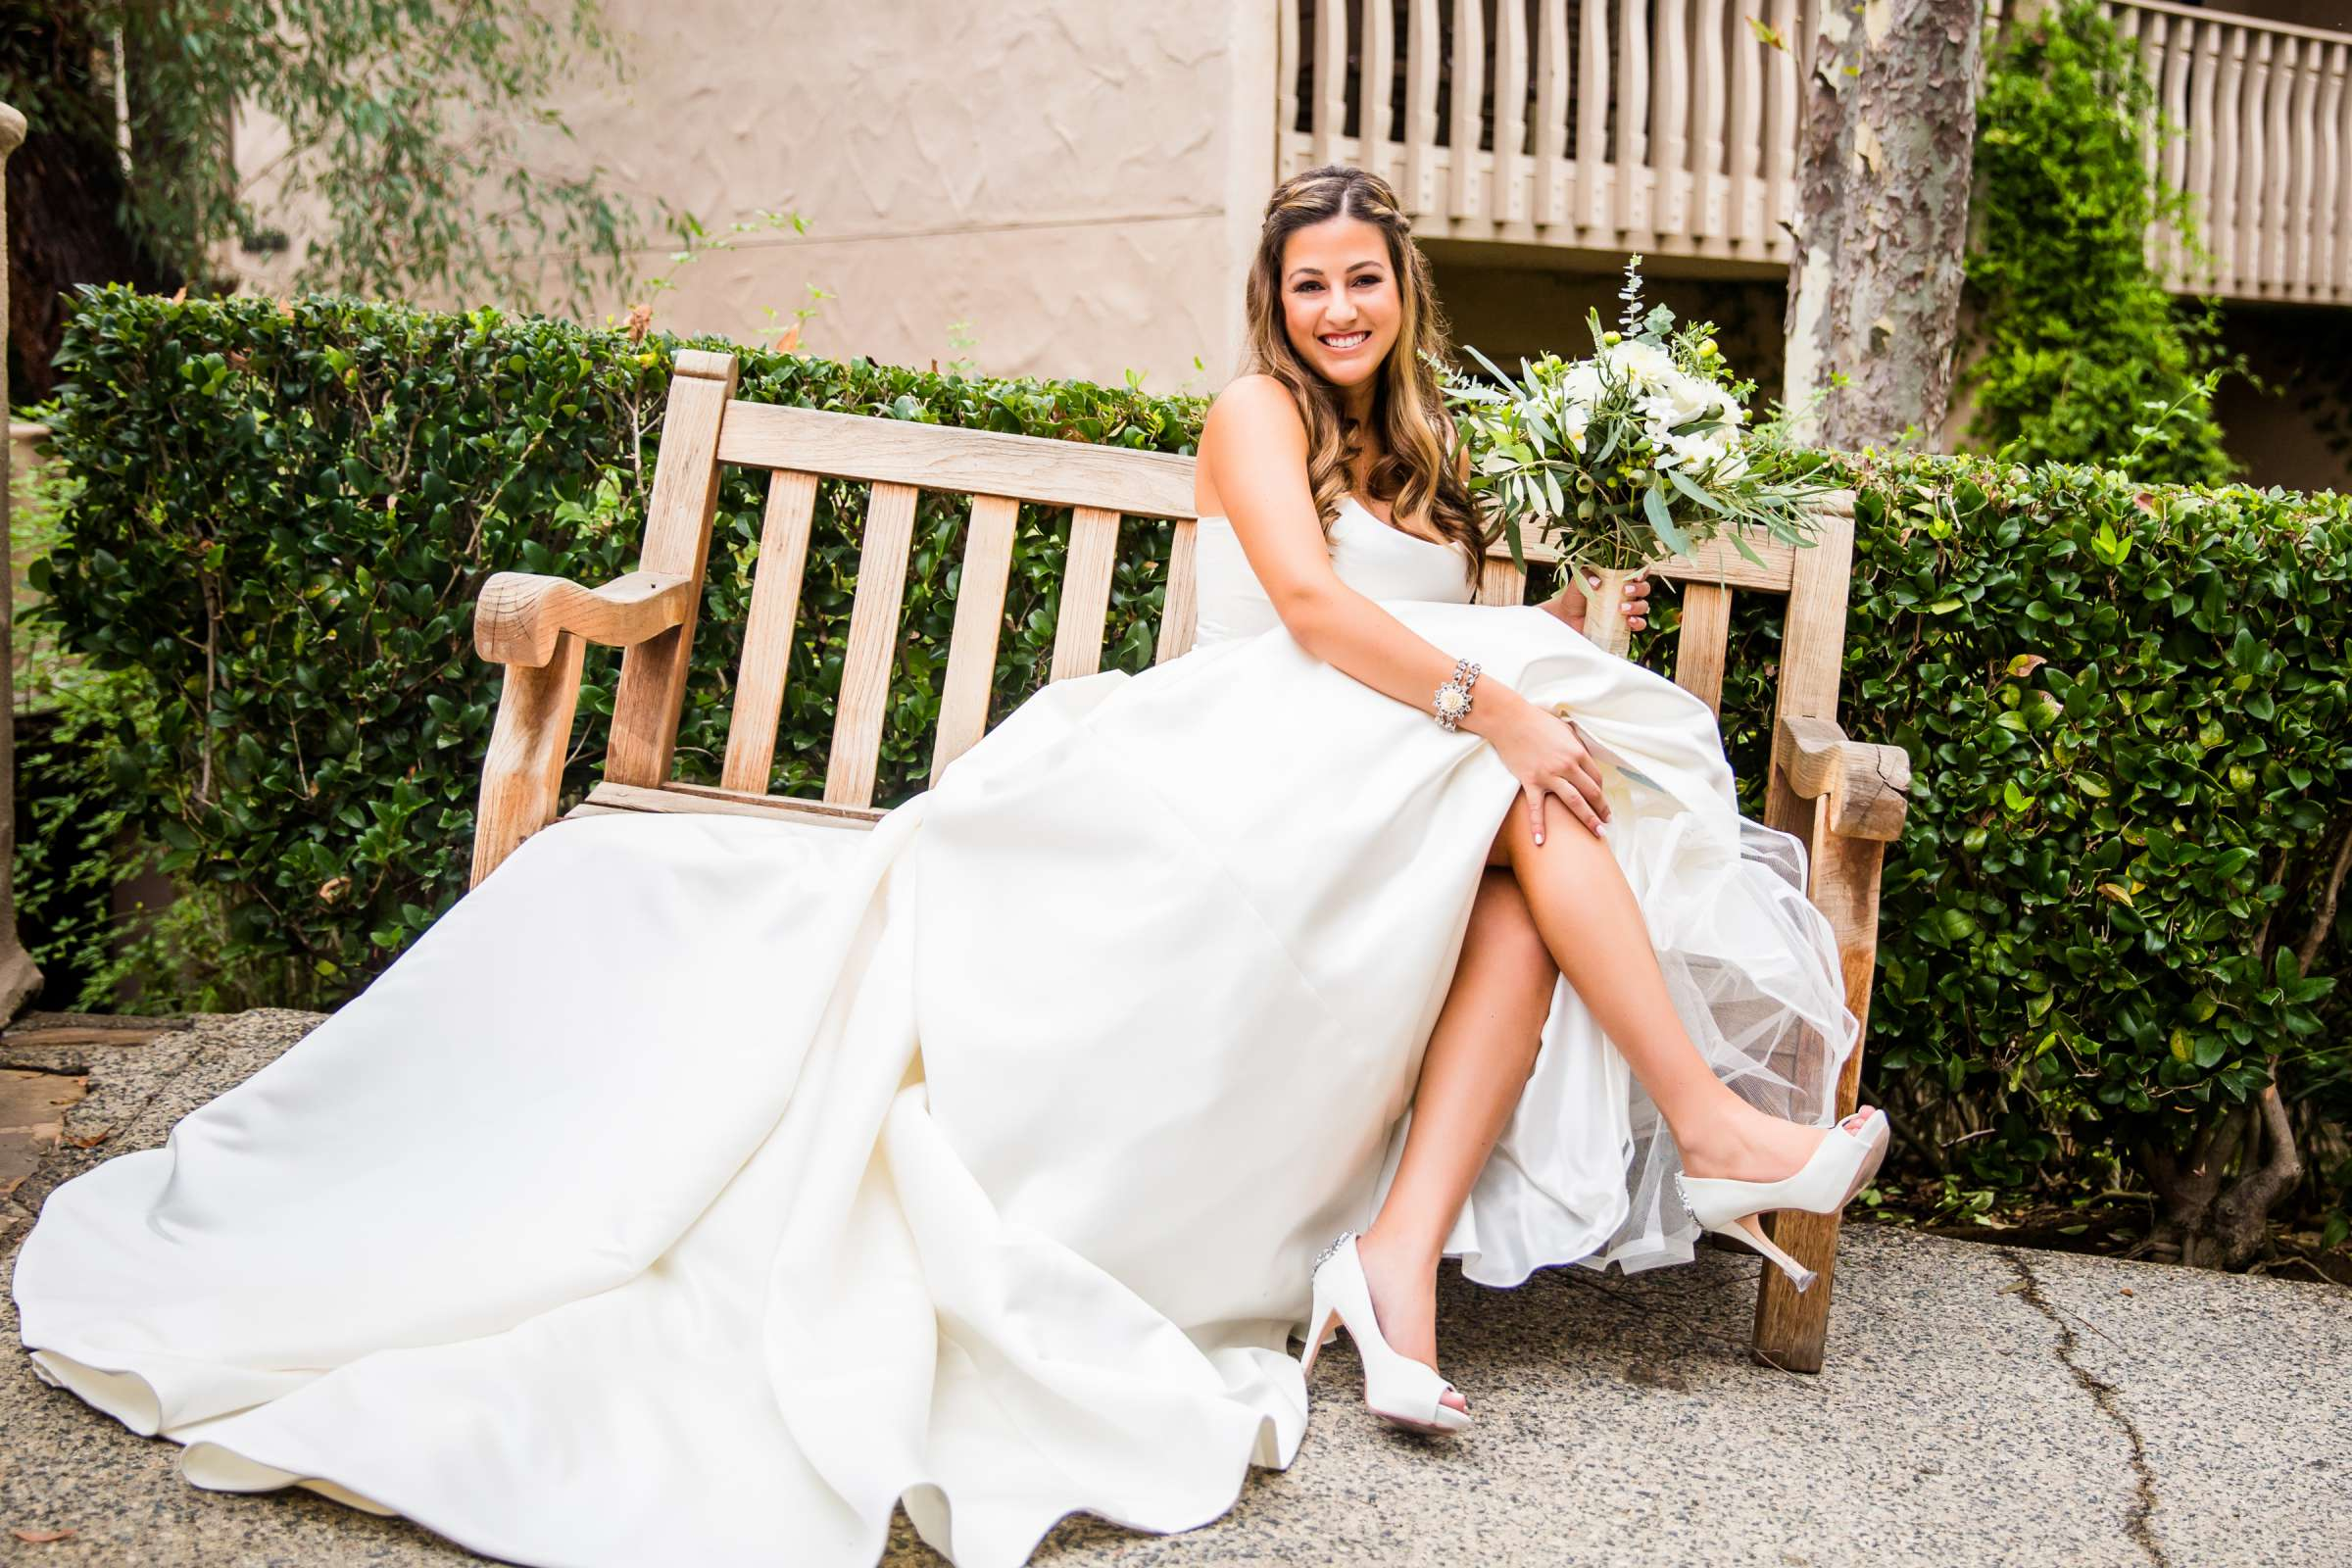 Rancho Bernardo Inn Wedding coordinated by Très Chic Events, Stefania and Nicholas Wedding Photo #4 by True Photography